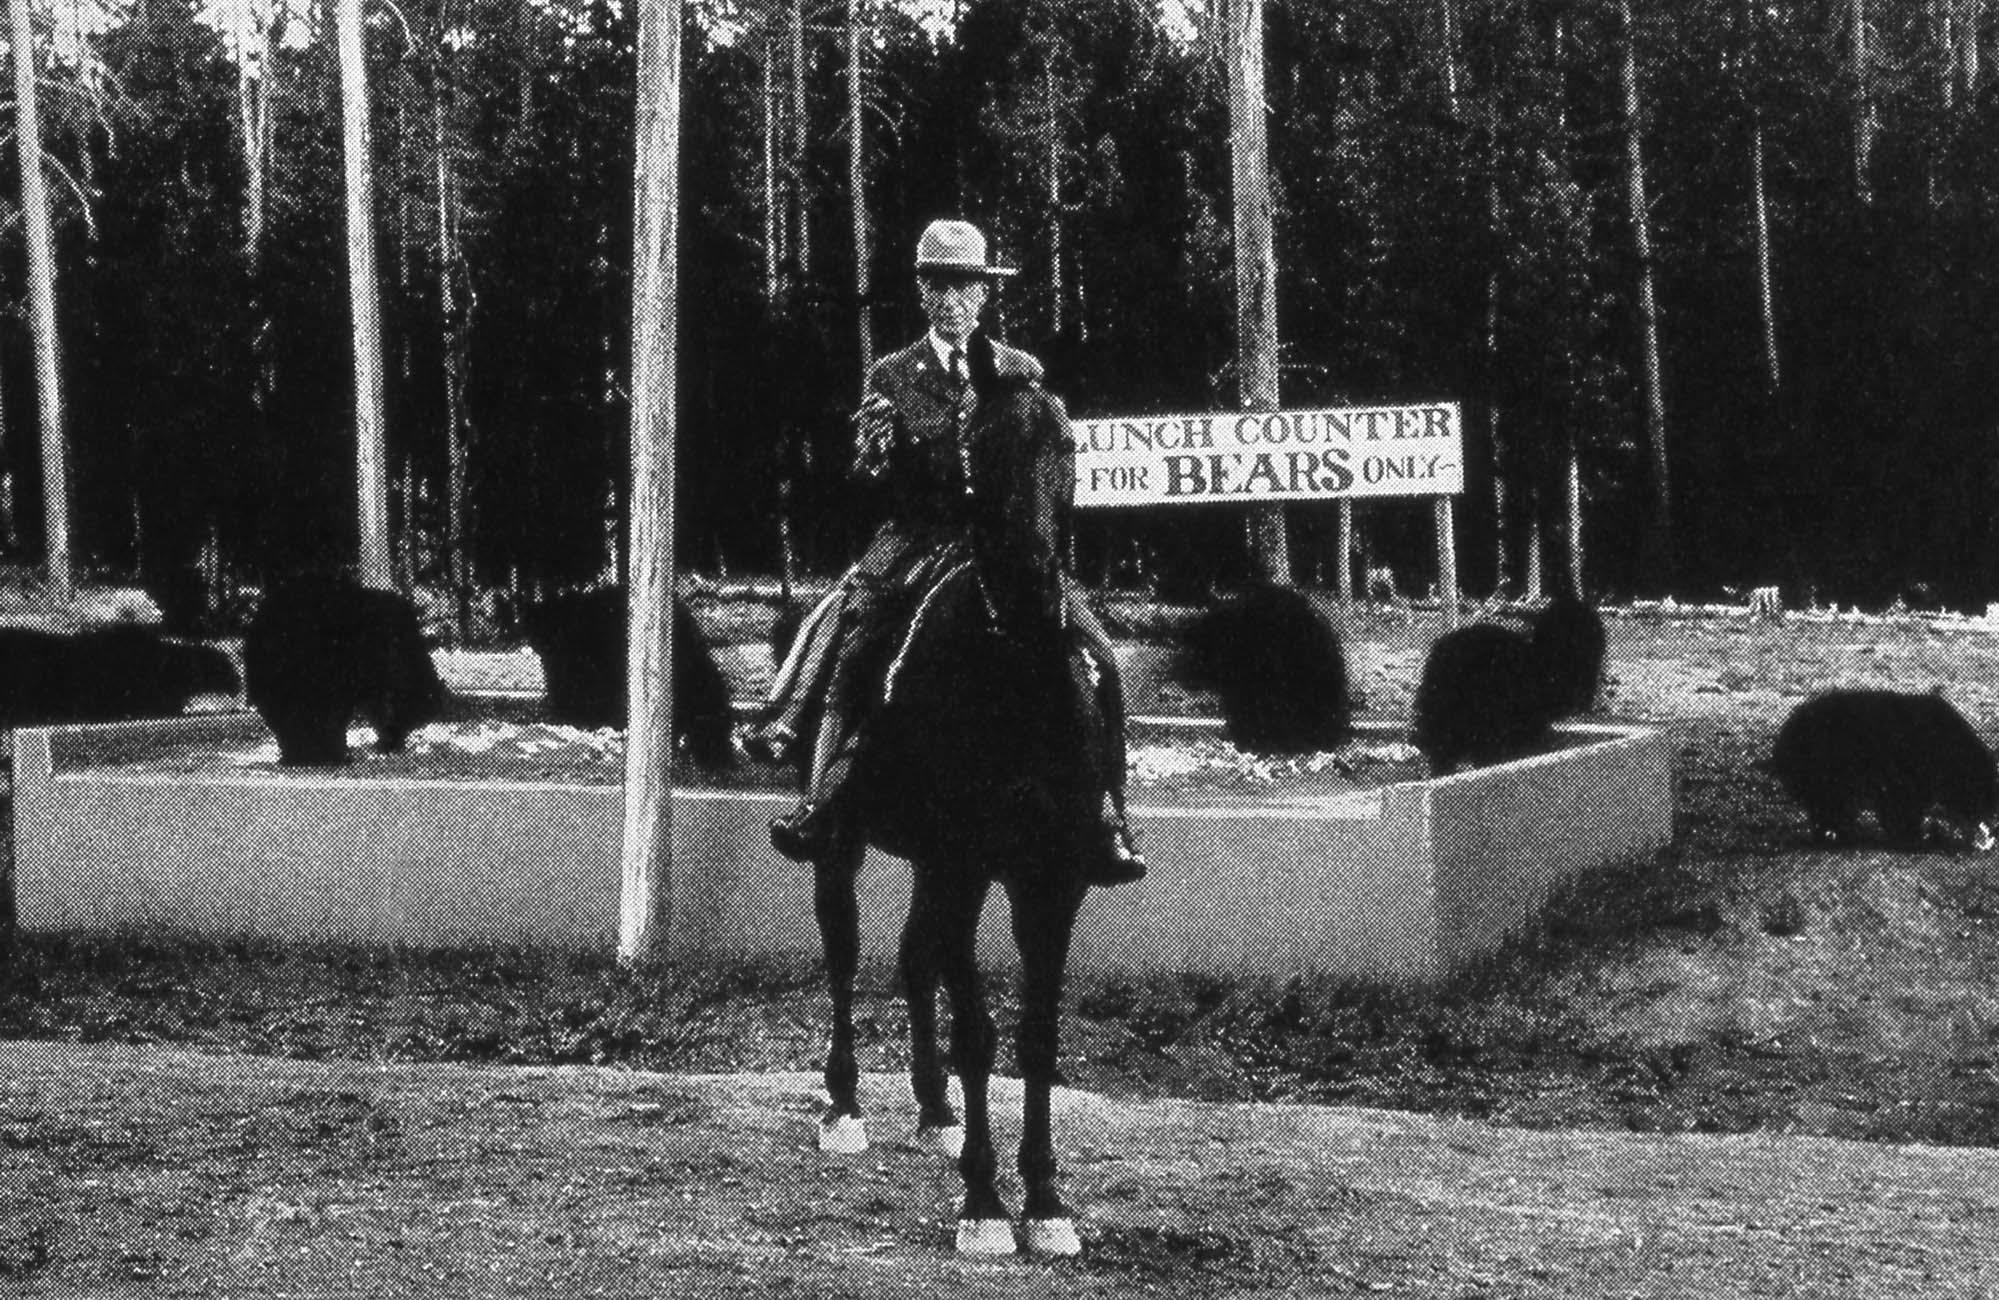 "A park ranger on a horse in front of a sign that reads ""Lunch Counter for Bears Only,"" with bears feeding in a box around it."